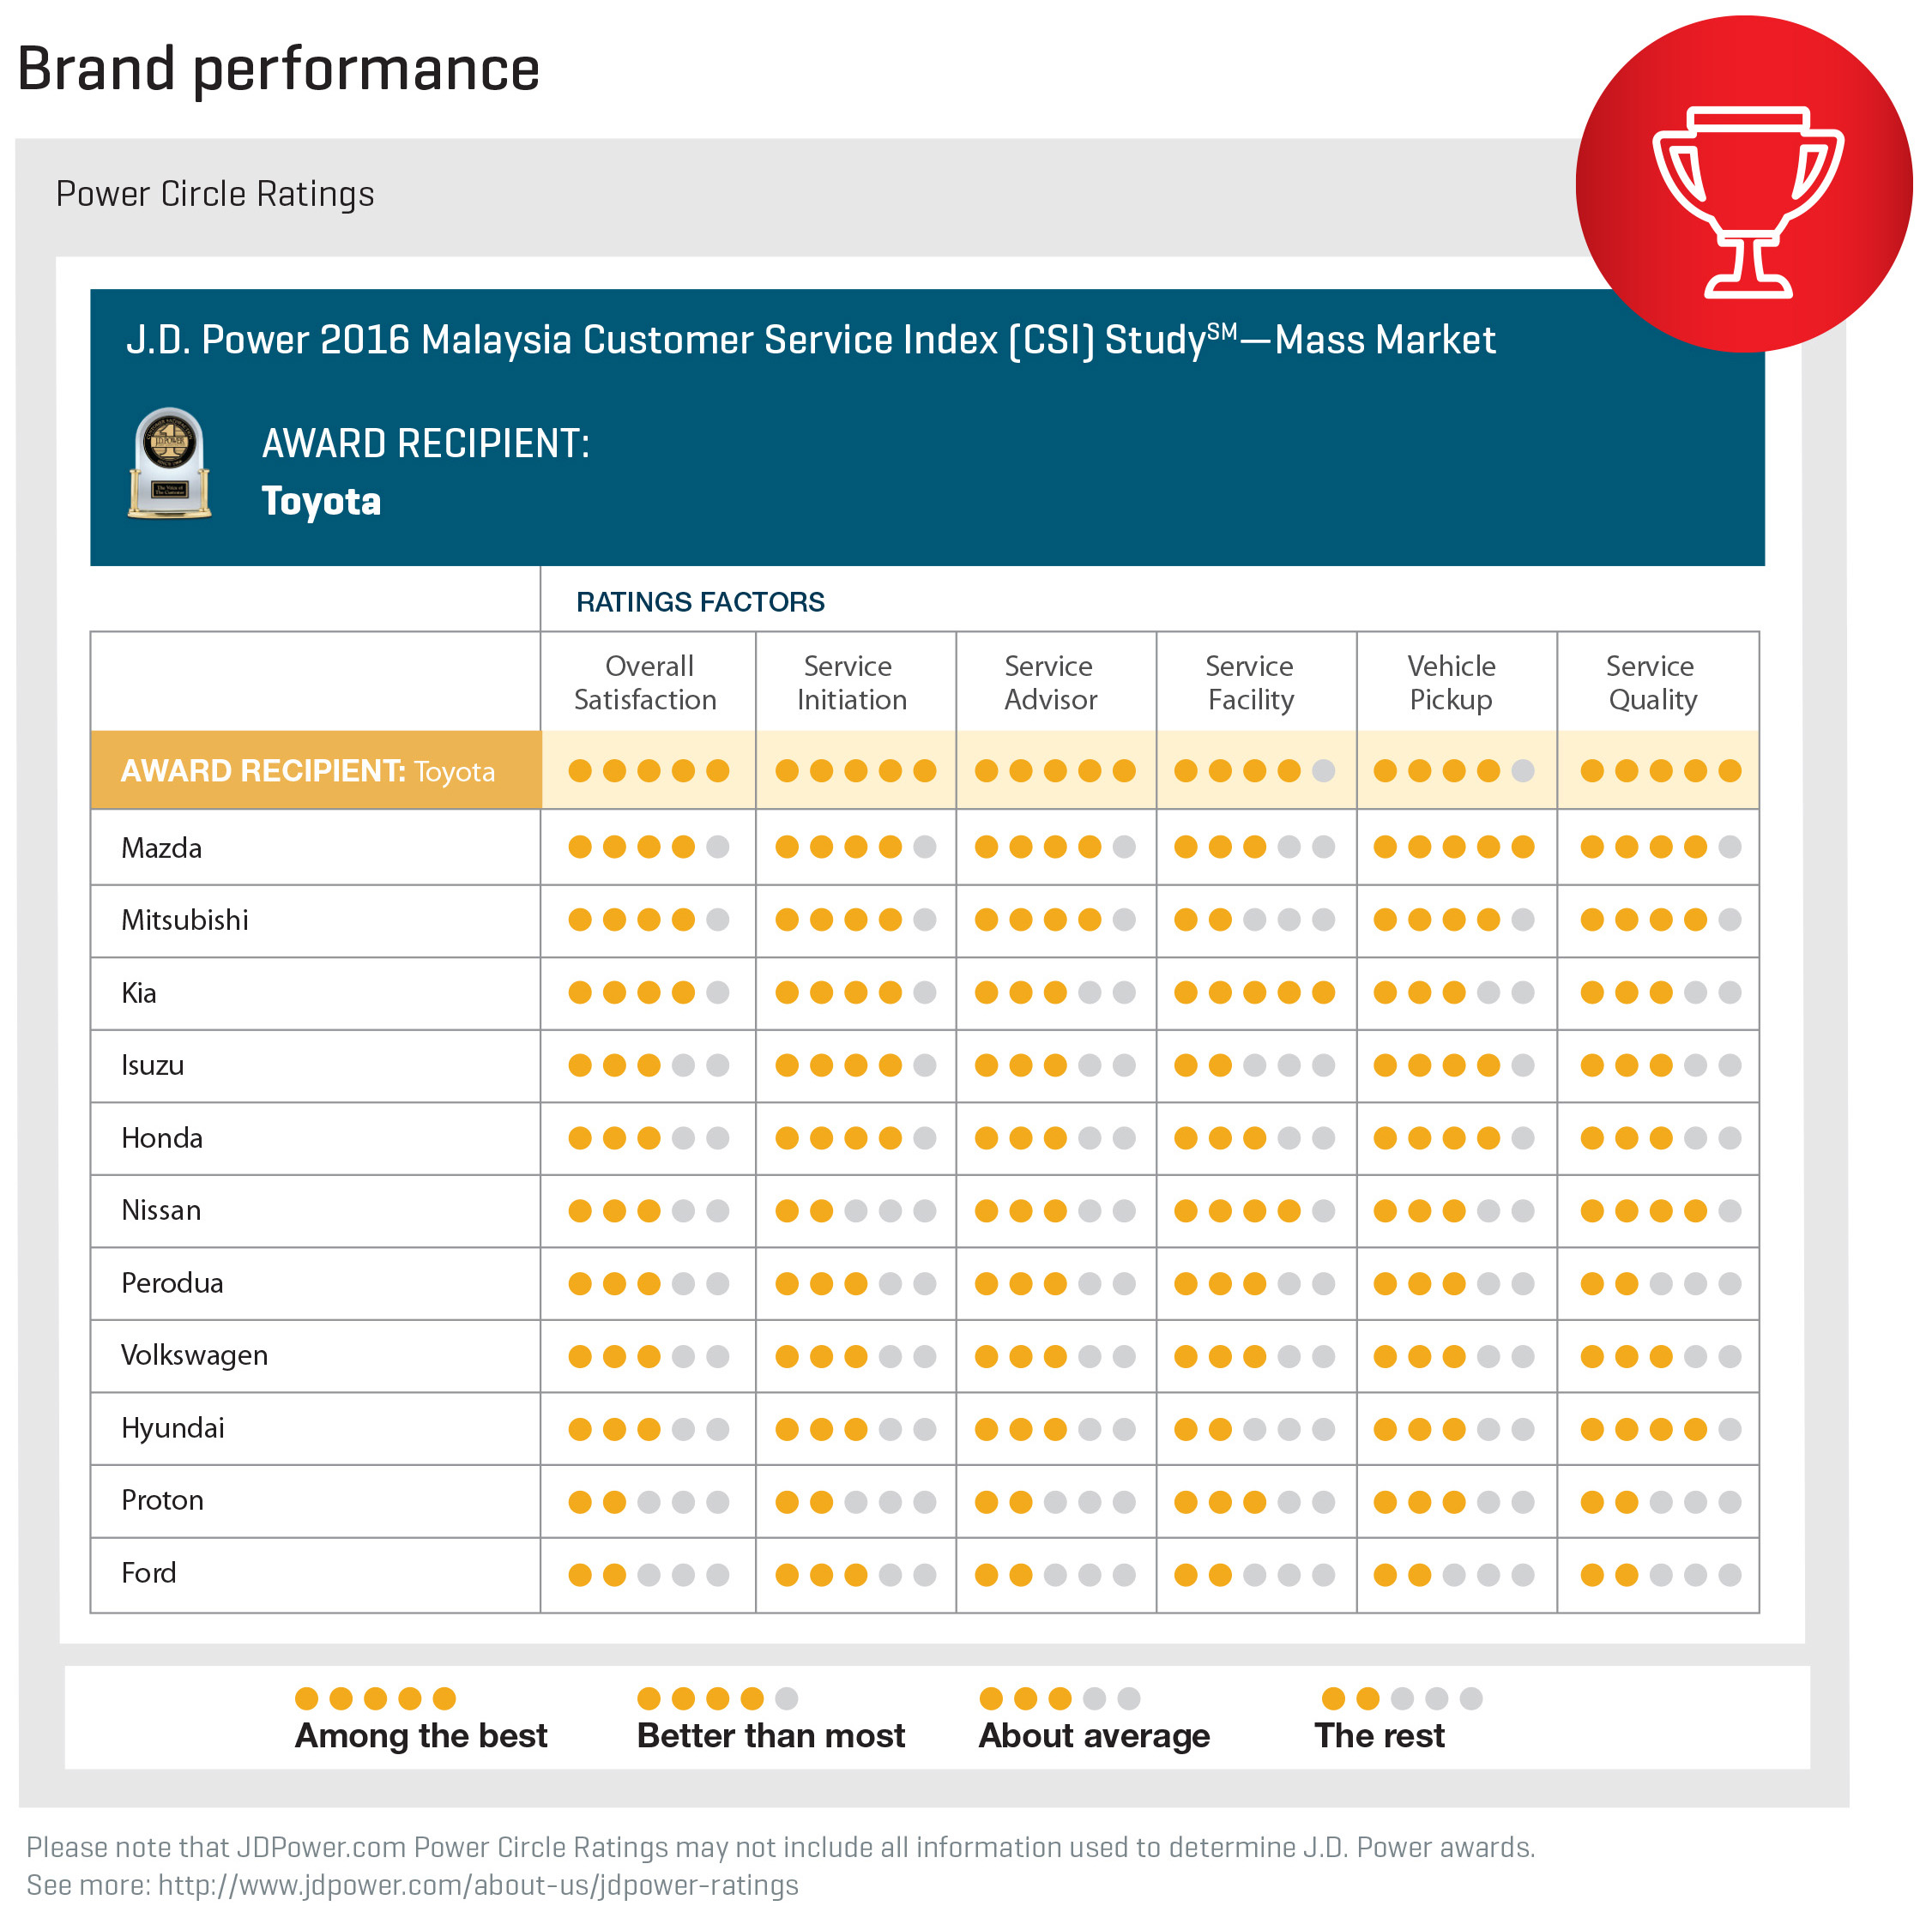 J d power 2016 malaysia customer service index more emphasis on service advisors toyota top